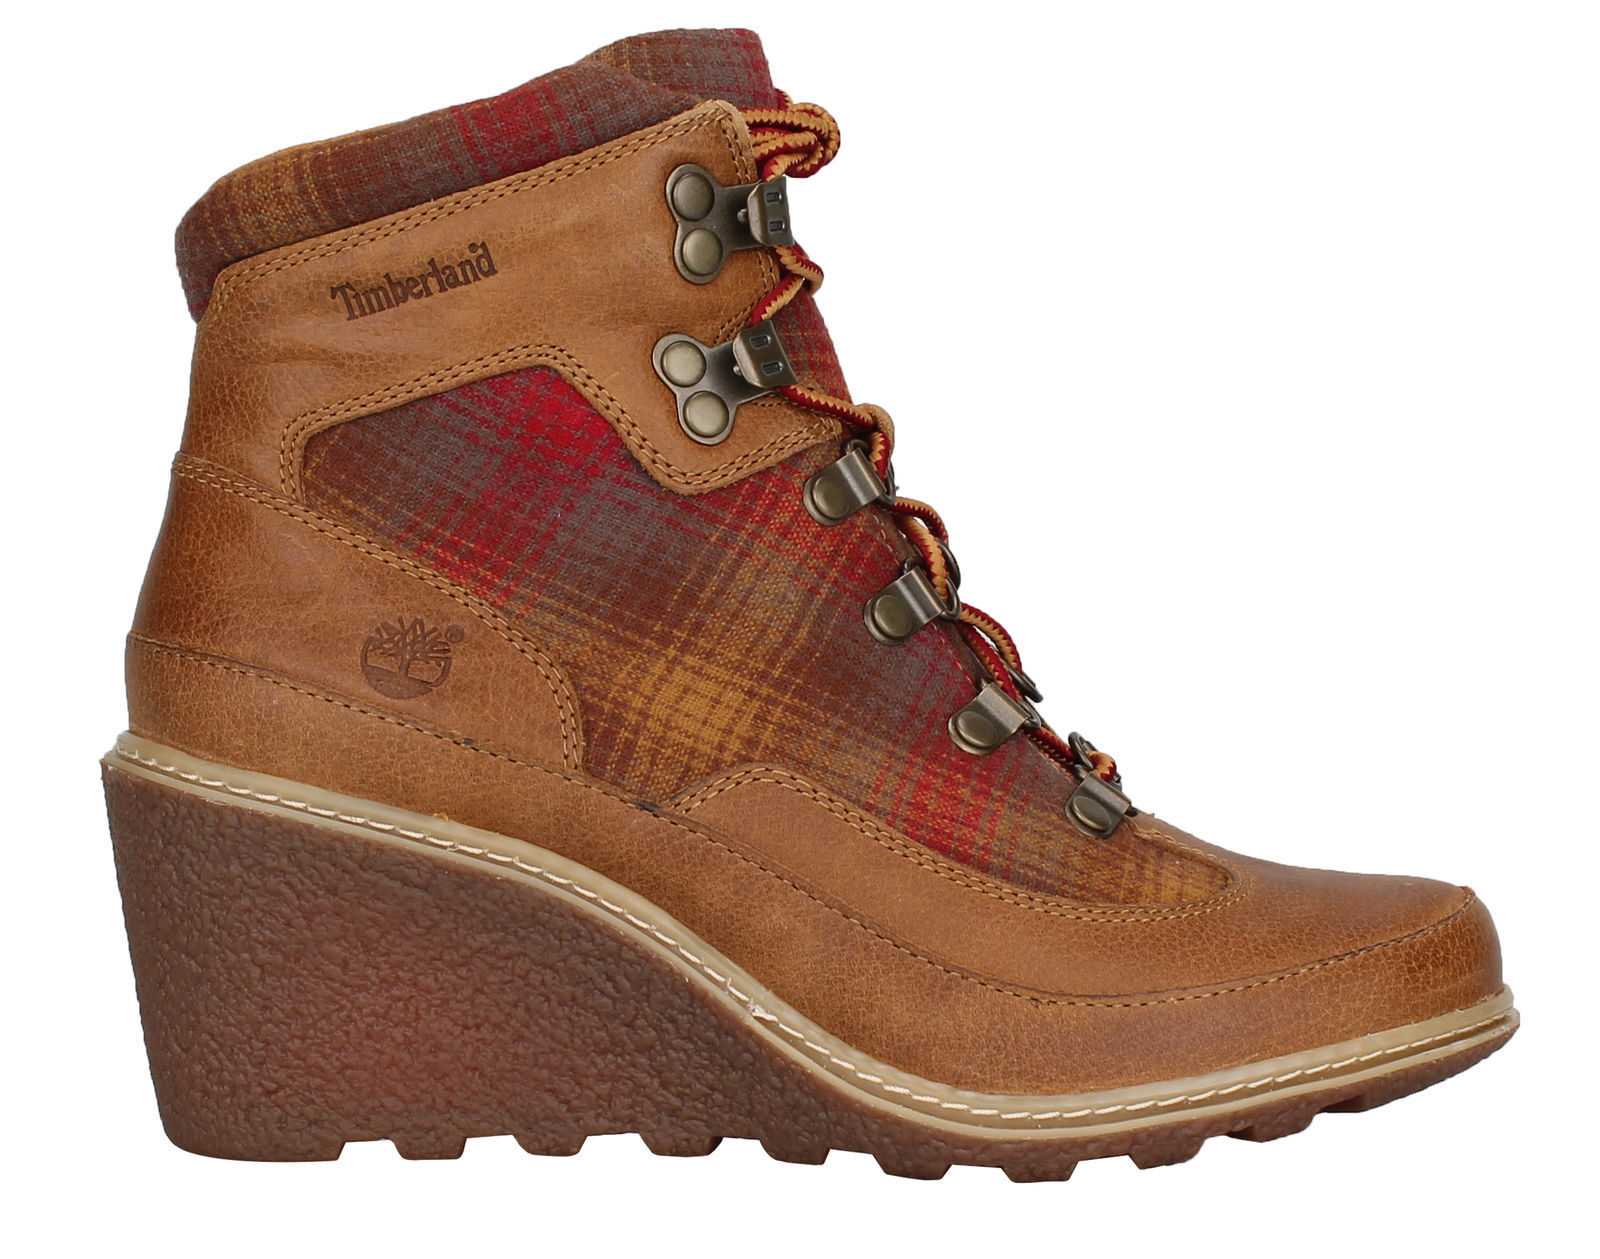 New Timberland Women's Amston Hiker Boots (A1124)  Wheat Woodlands/Red Pendleton